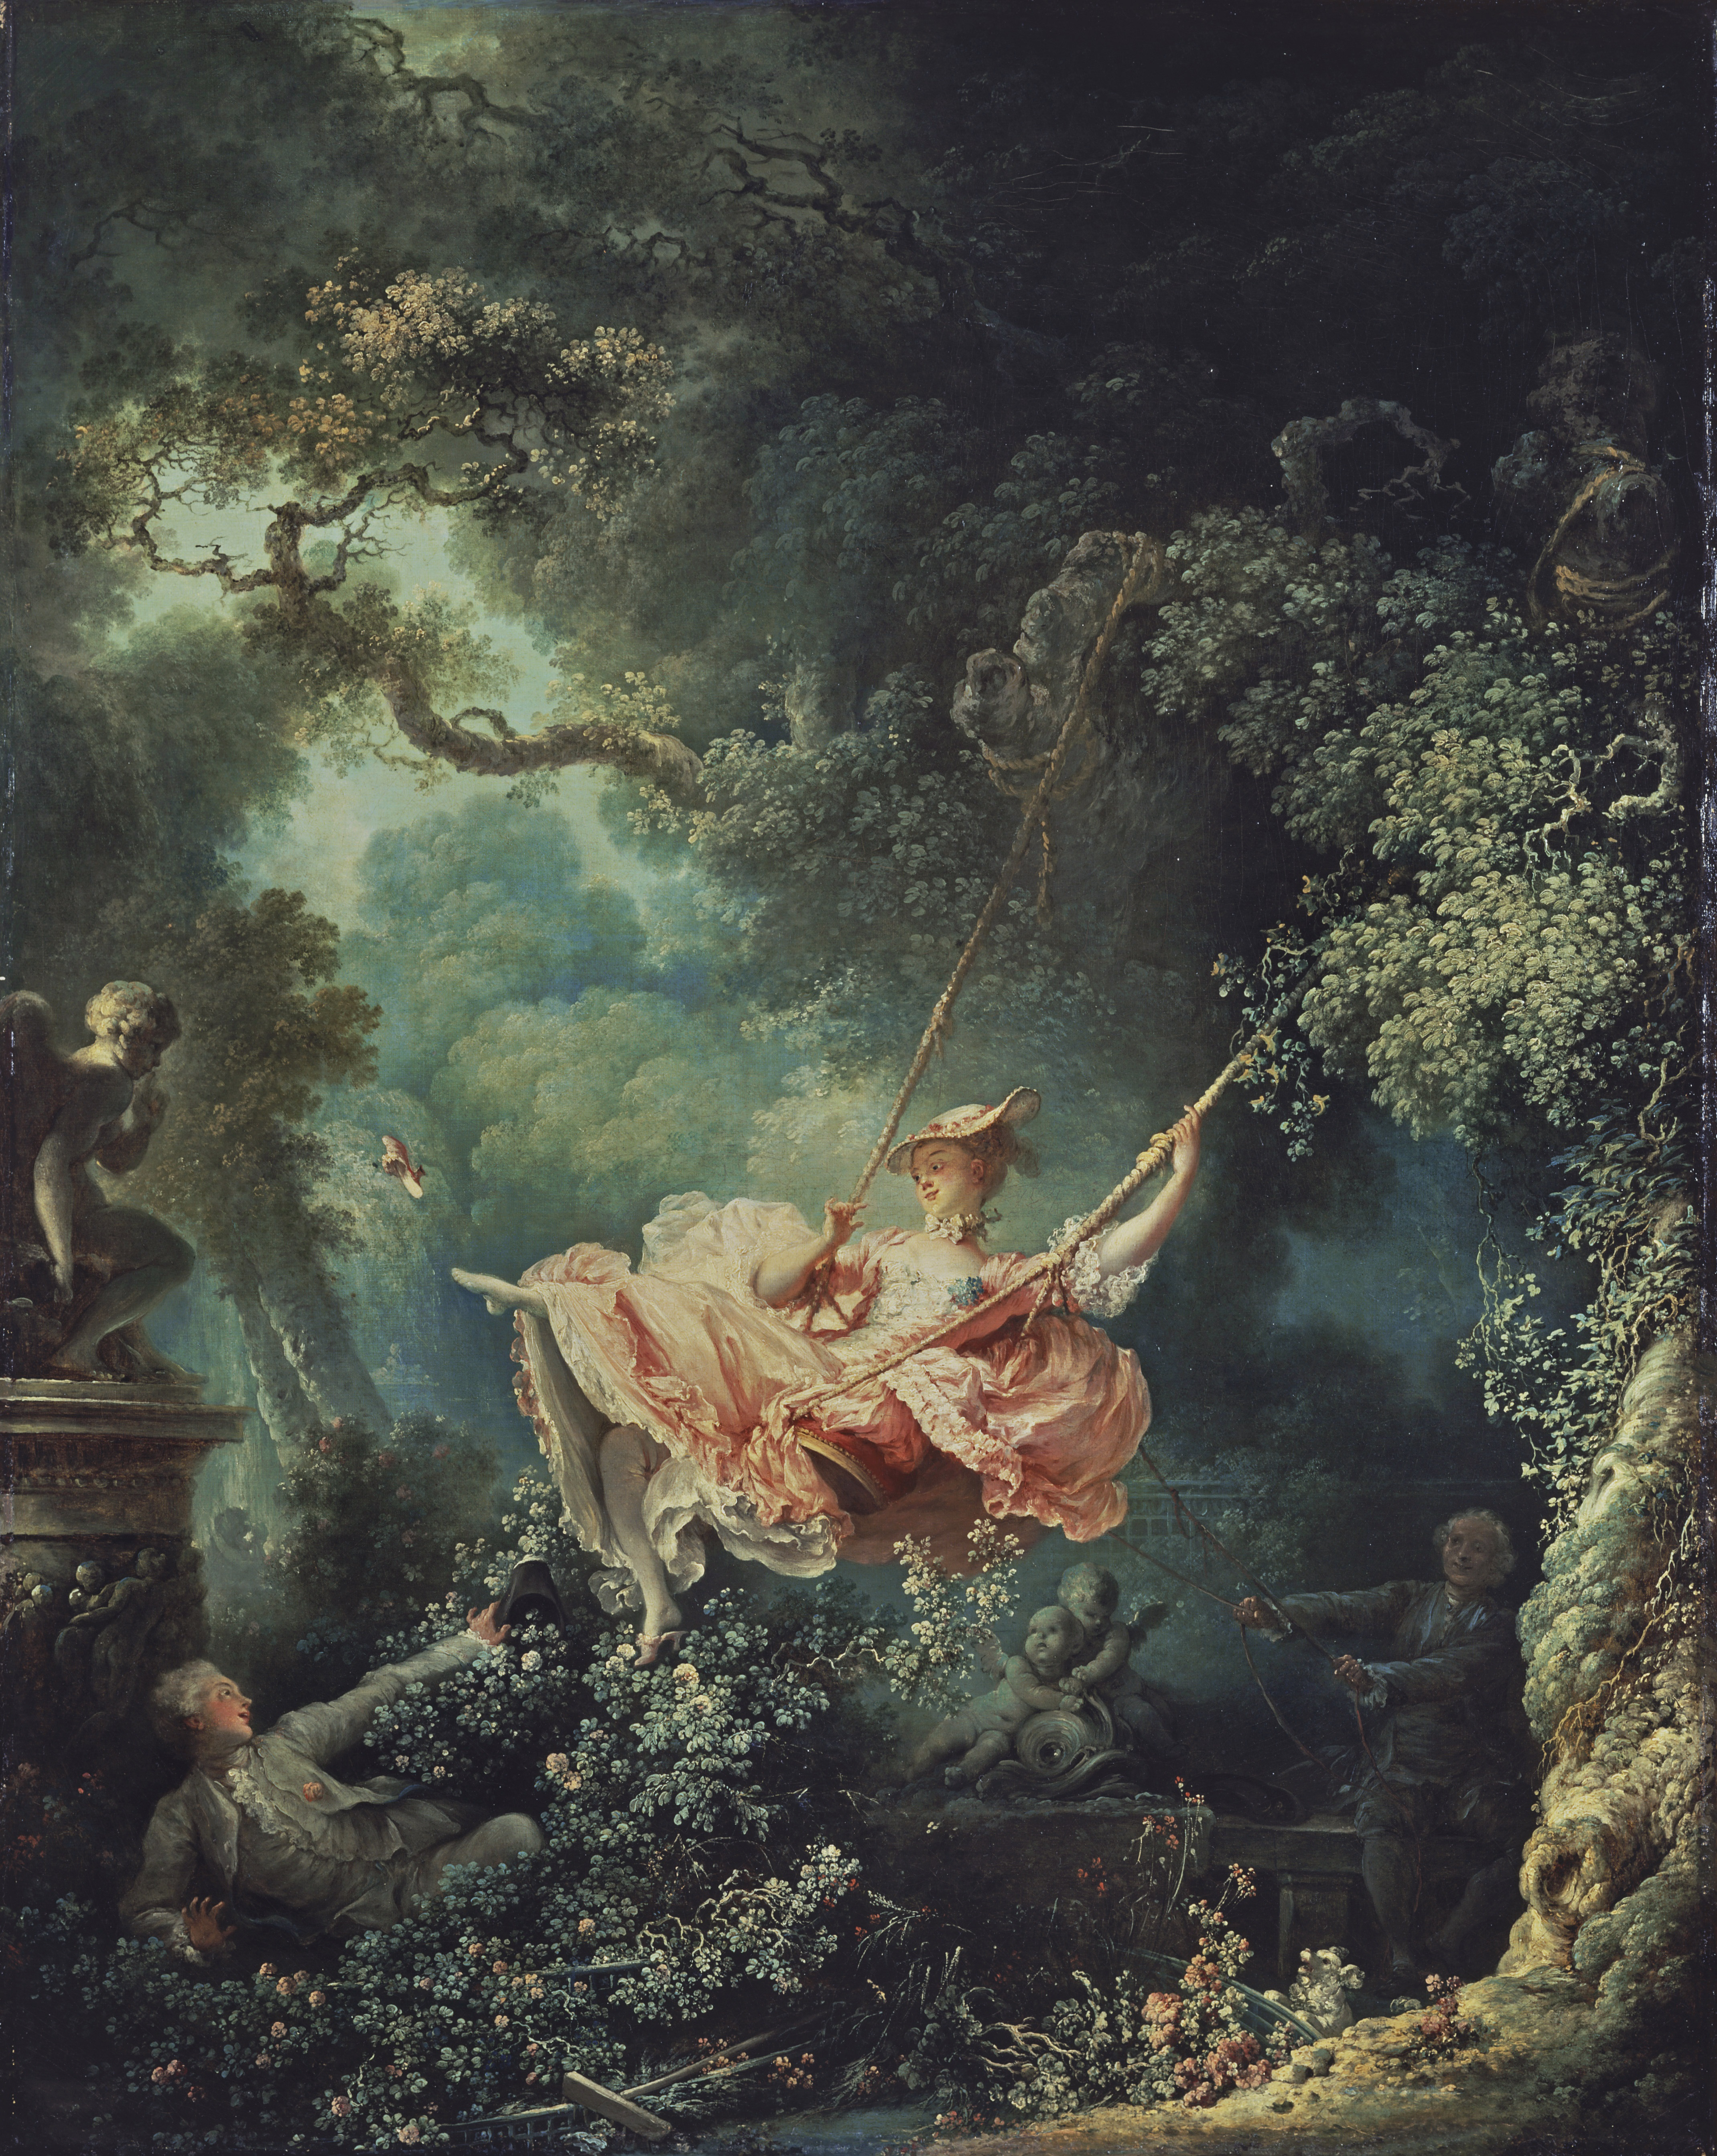 Jean-Honoré Fragonard, The <em>Les hazards heureux de l'escarpolette (The Swing)</em>, oil on canvas, c.1767-8 (London: Wallace Collection, Object No. P430); image courtesy of the Wallace Collection